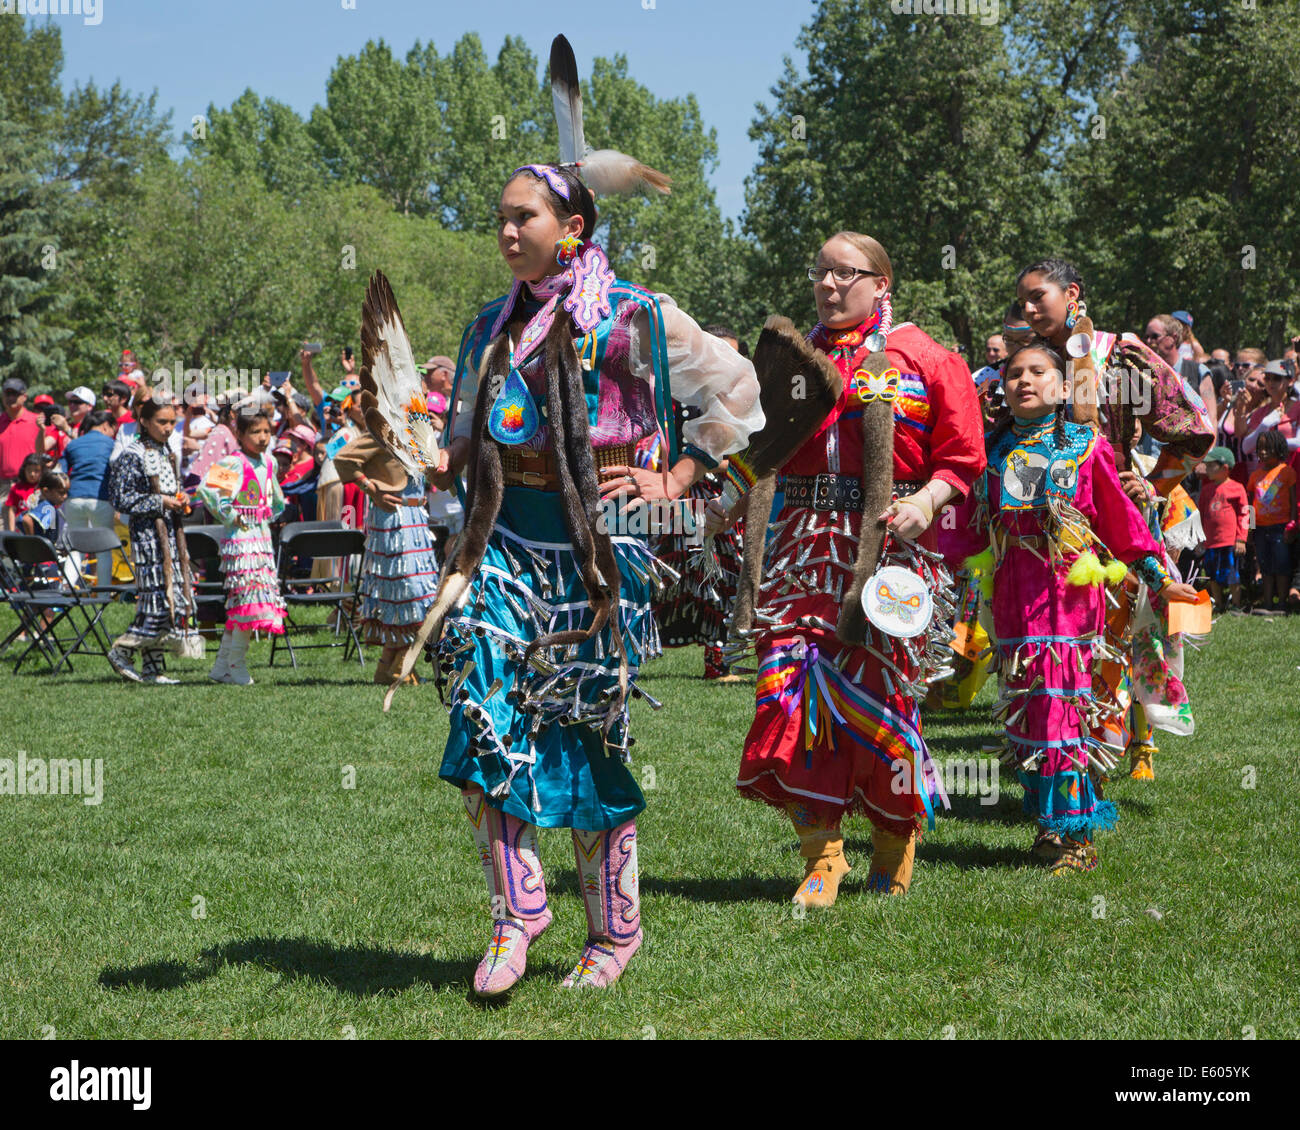 Dancers at First Nations powwow celebrating Canada Day - Stock Image